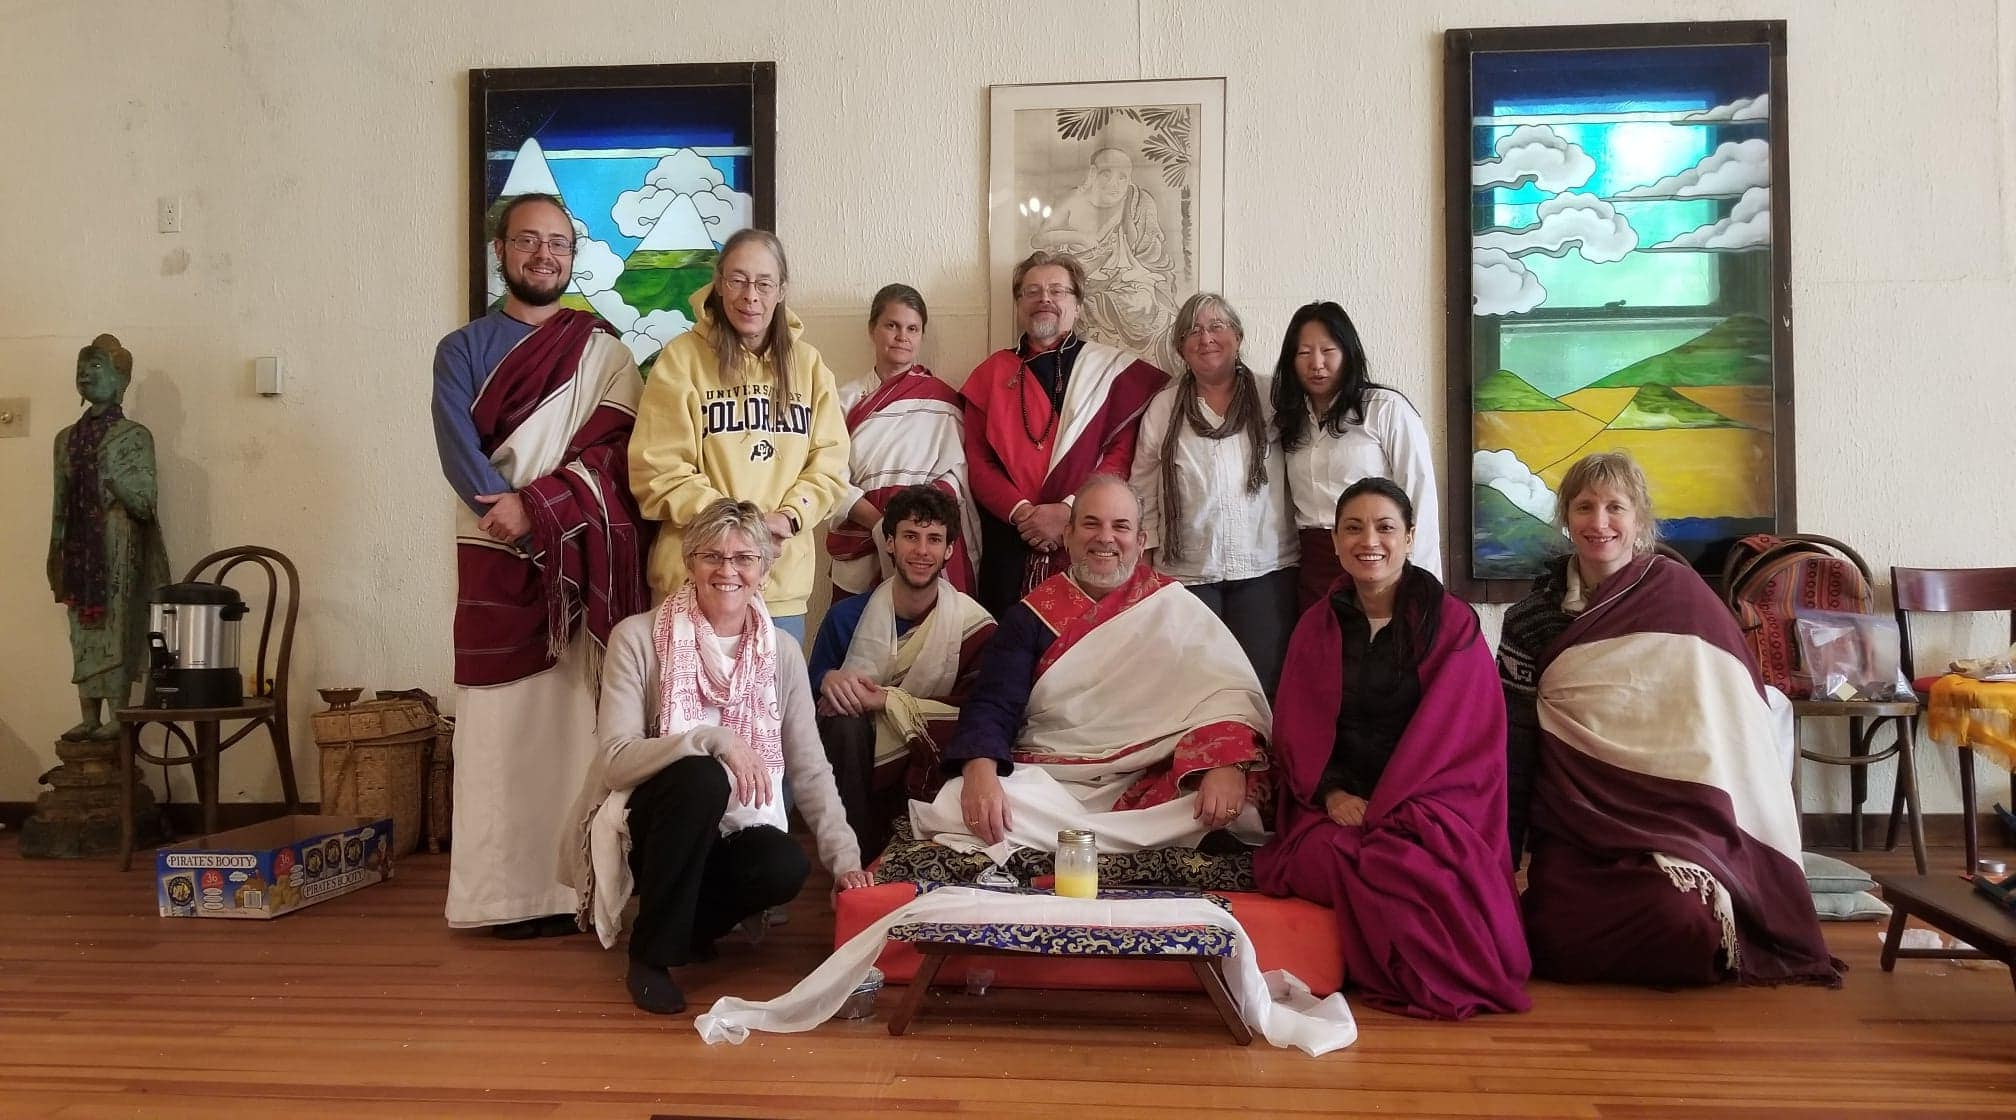 Meditation hall group 2.jpg